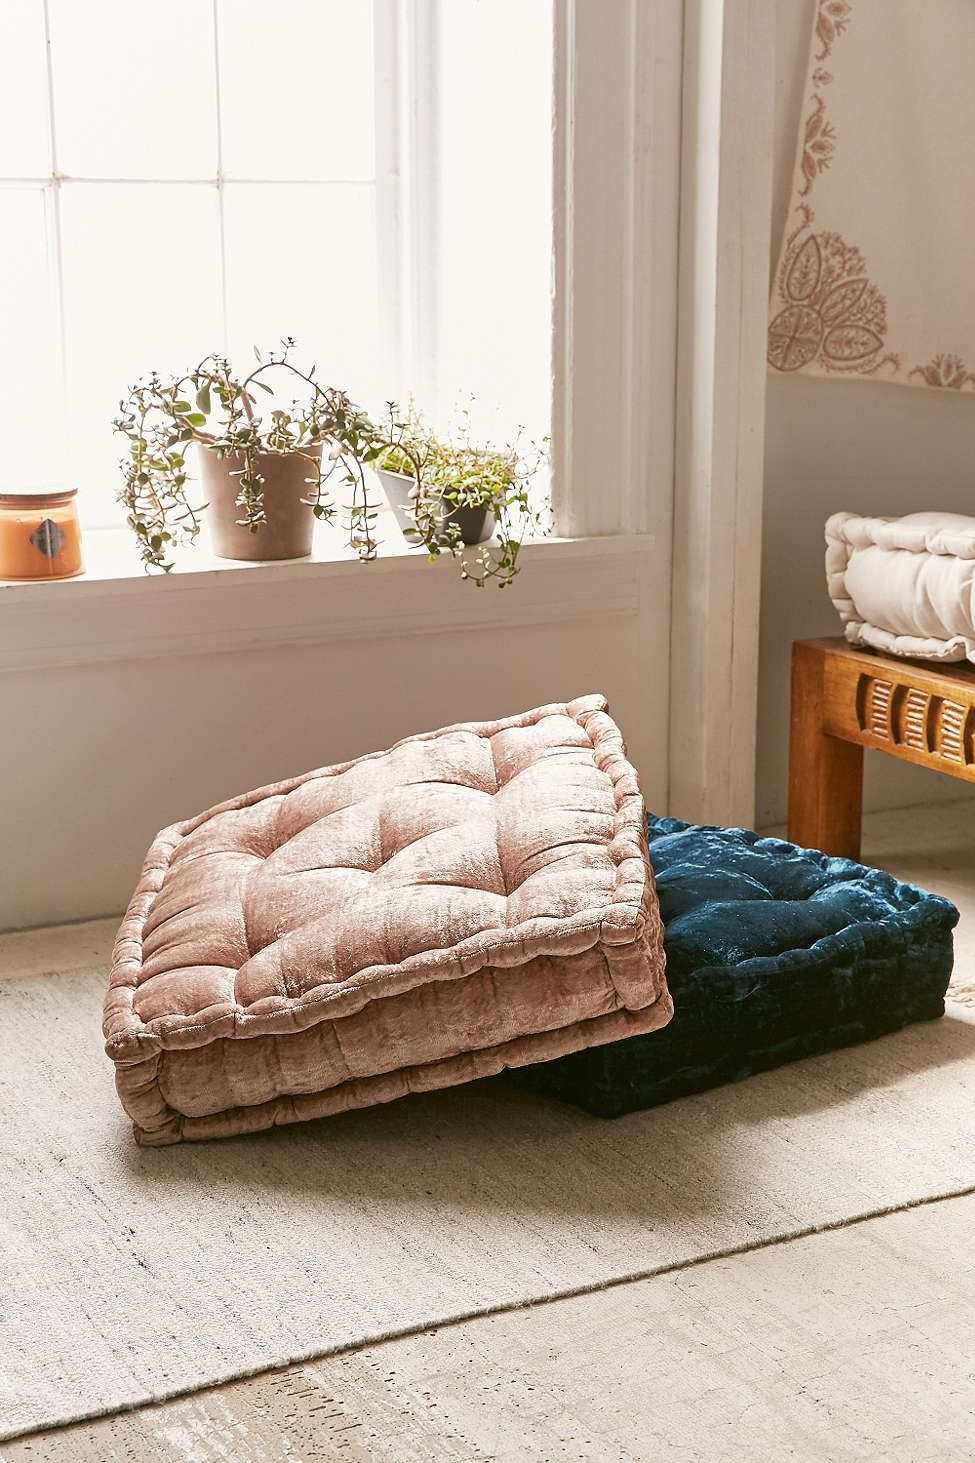 Ruthie Velvet Floor Pillow Urban outfitters, Awesome and Floor cushions